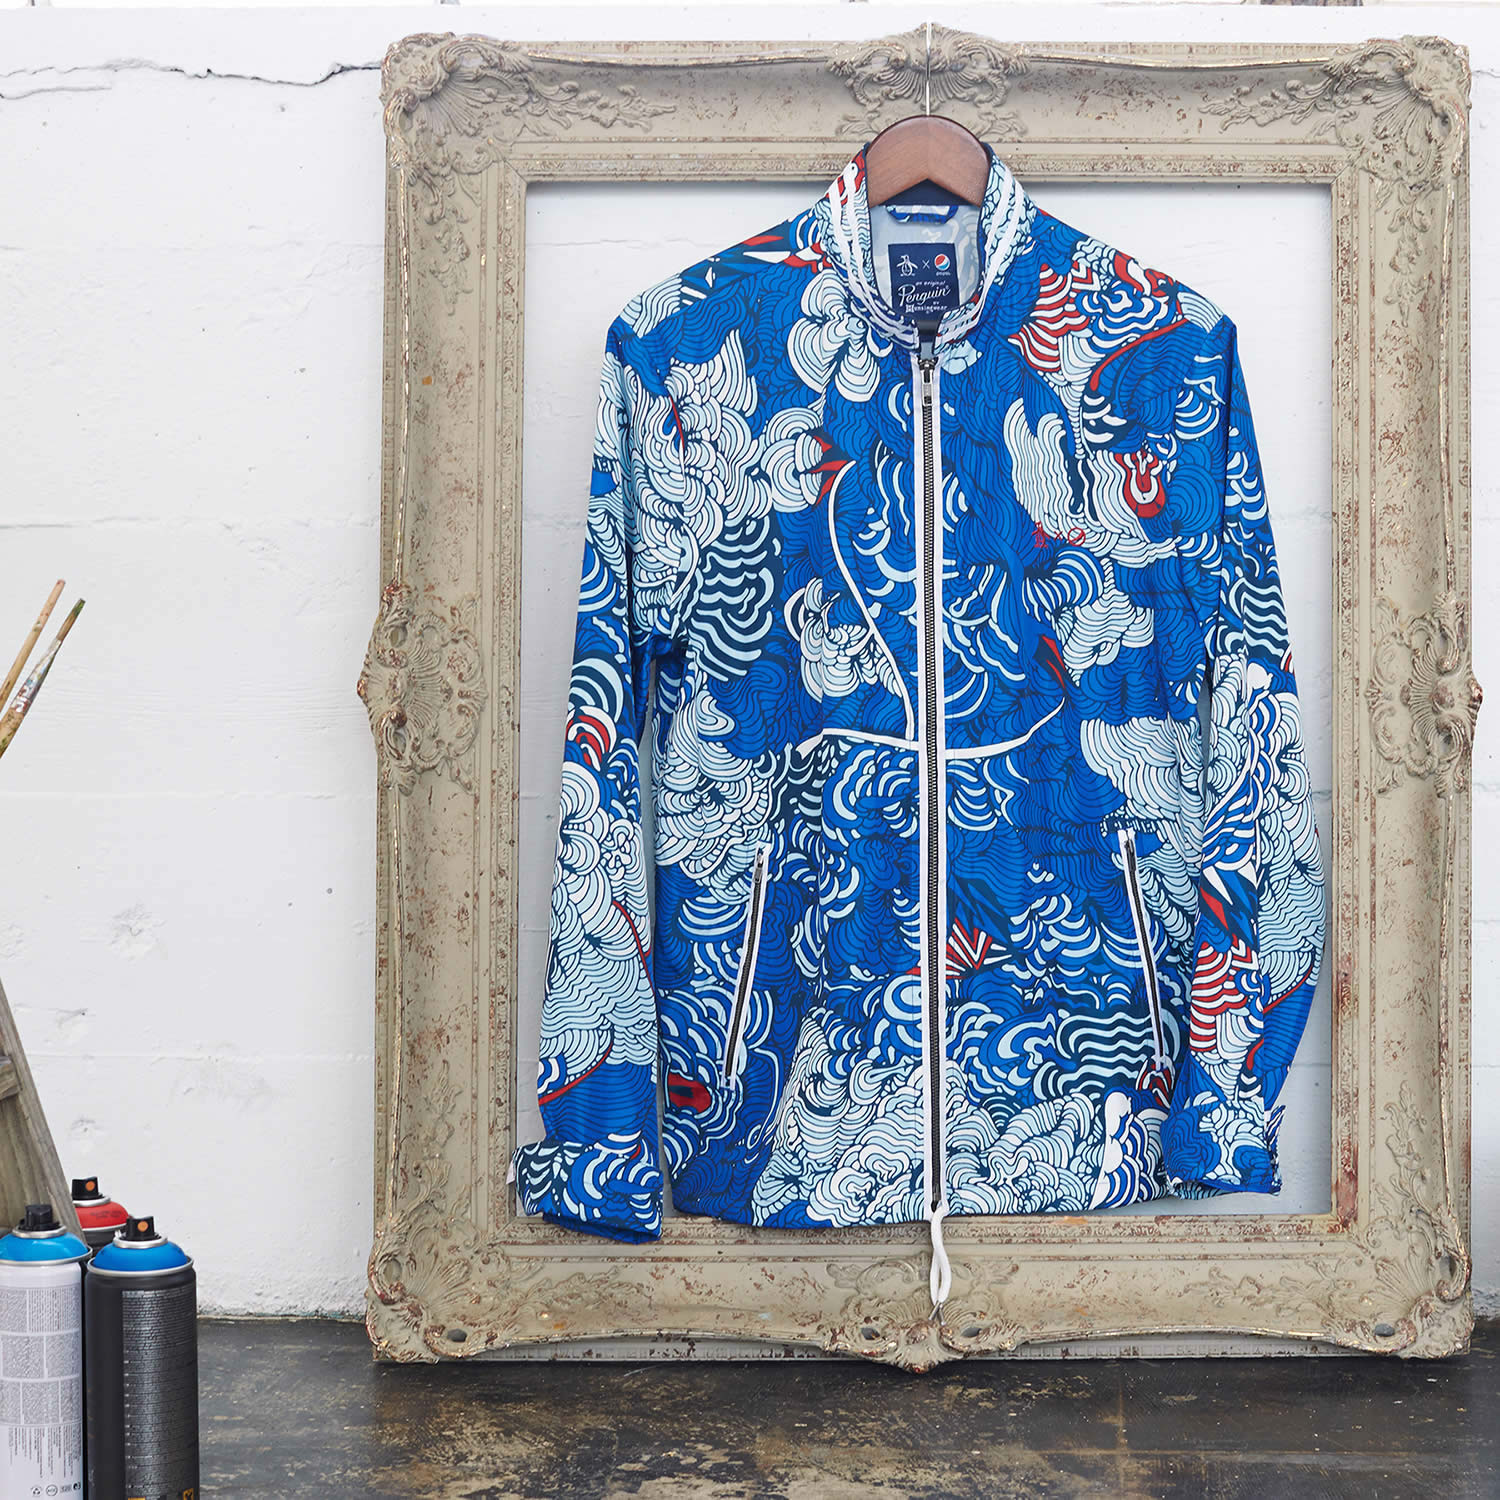 Pepsi Live For Now Capsule Collection, drawing on jacket